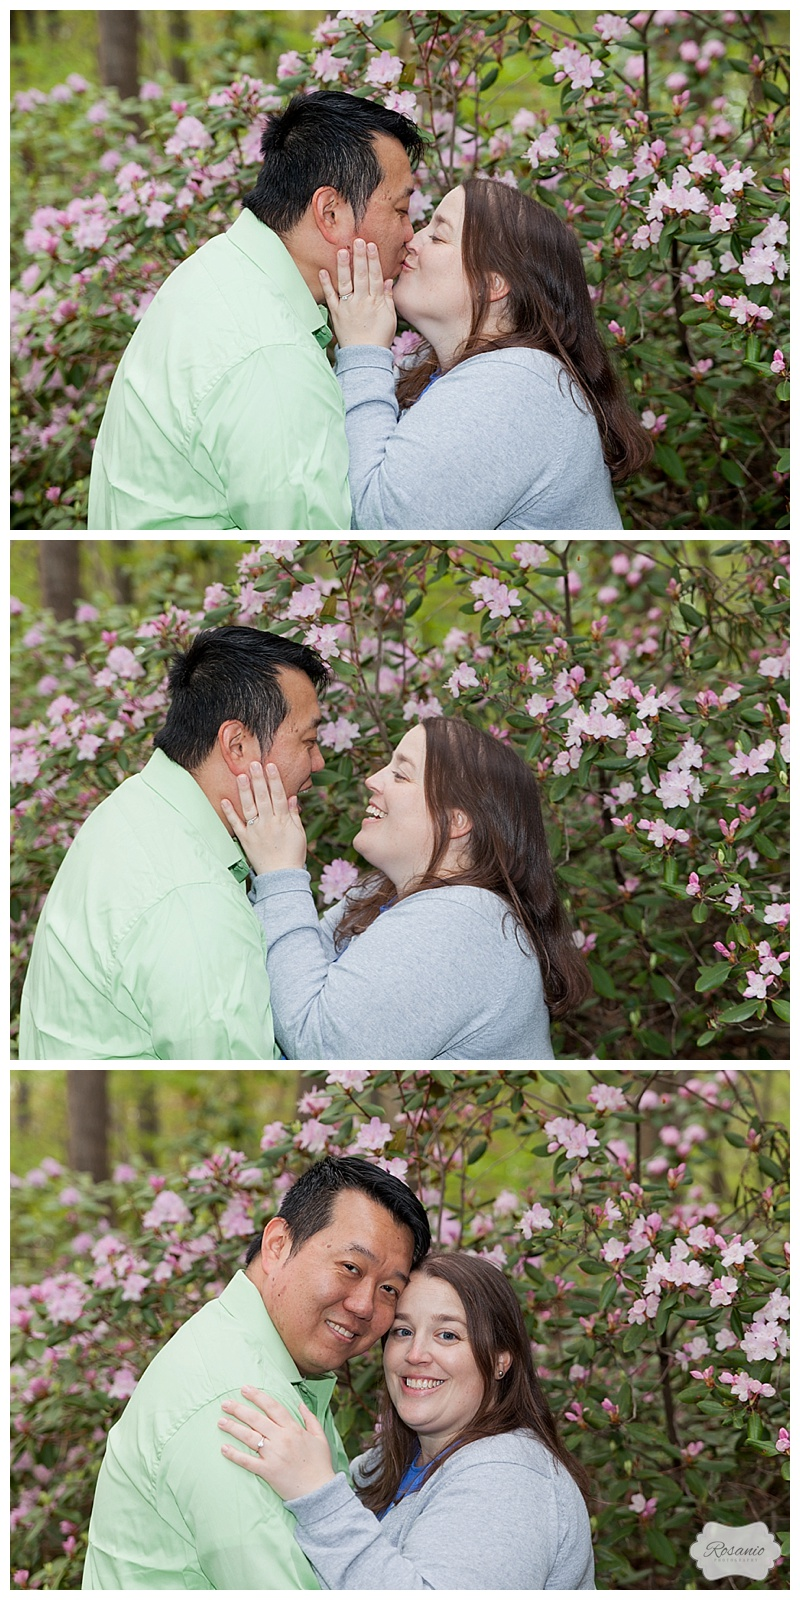 Rosanio Photography | Rolling Ridge Retreat and Conference Center Engagement Photography | Massachusetts Engagement Photographer 13.jpg